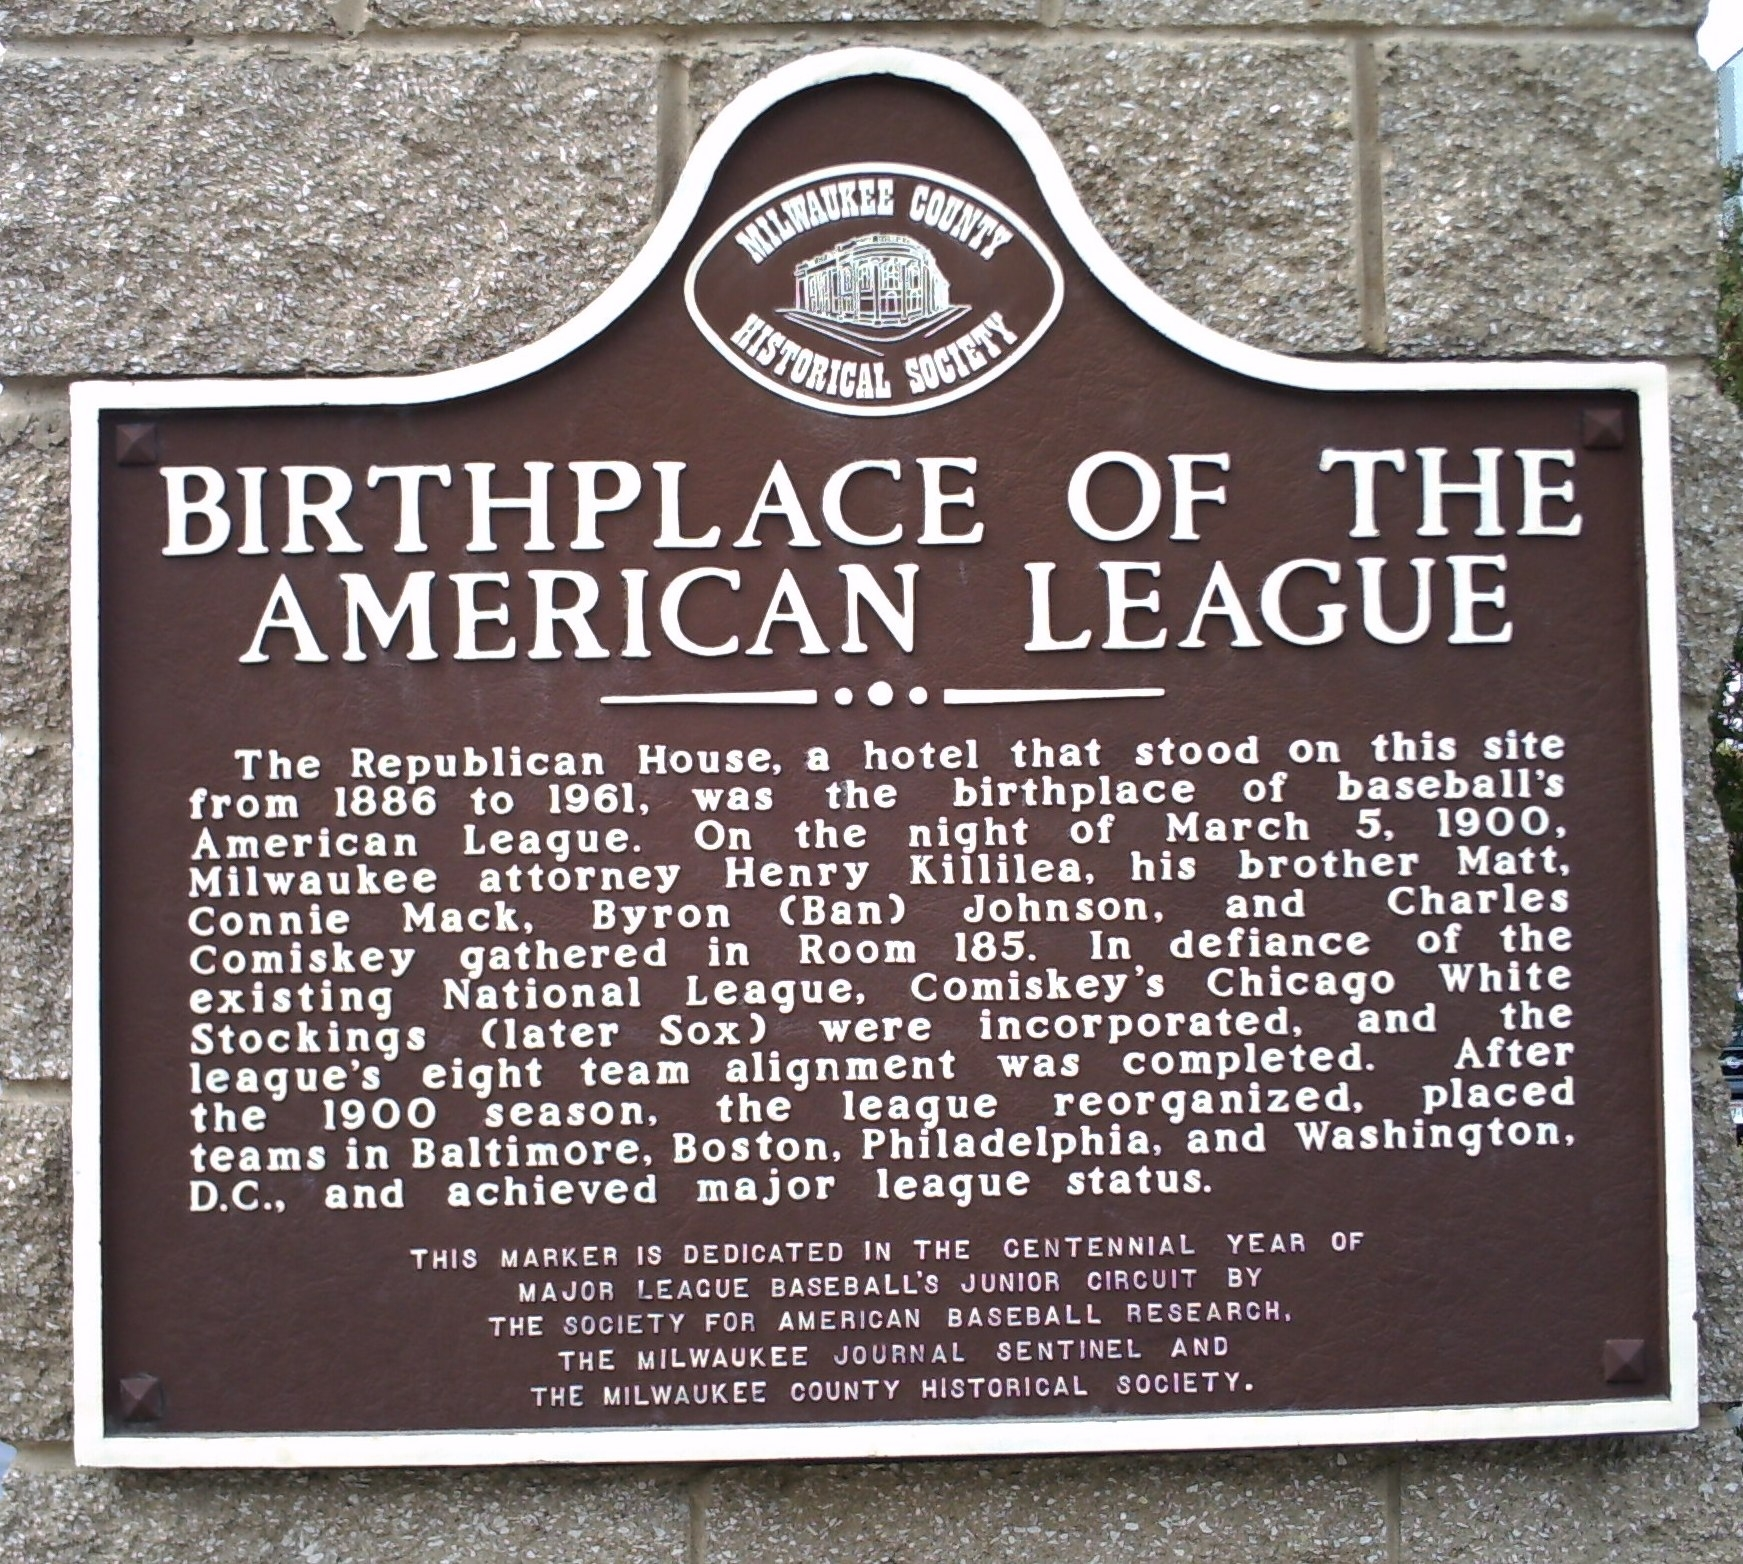 Birthplace of the American League Marker